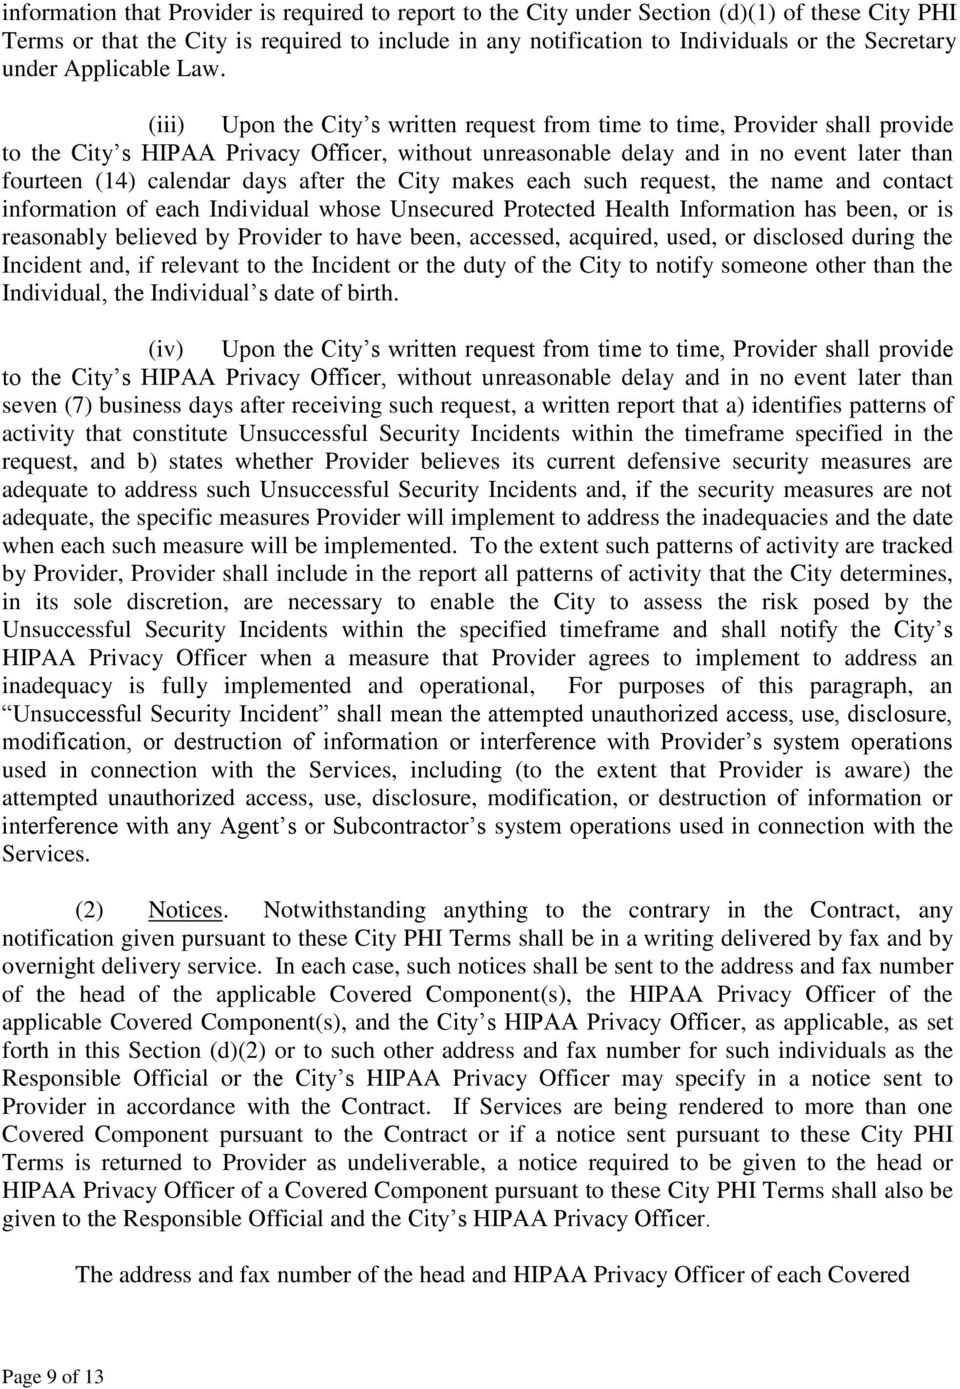 (iii) Upon the City s written request from time to time, Provider shall provide to the City s HIPAA Privacy Officer, without unreasonable delay and in no event later than fourteen (14) calendar days